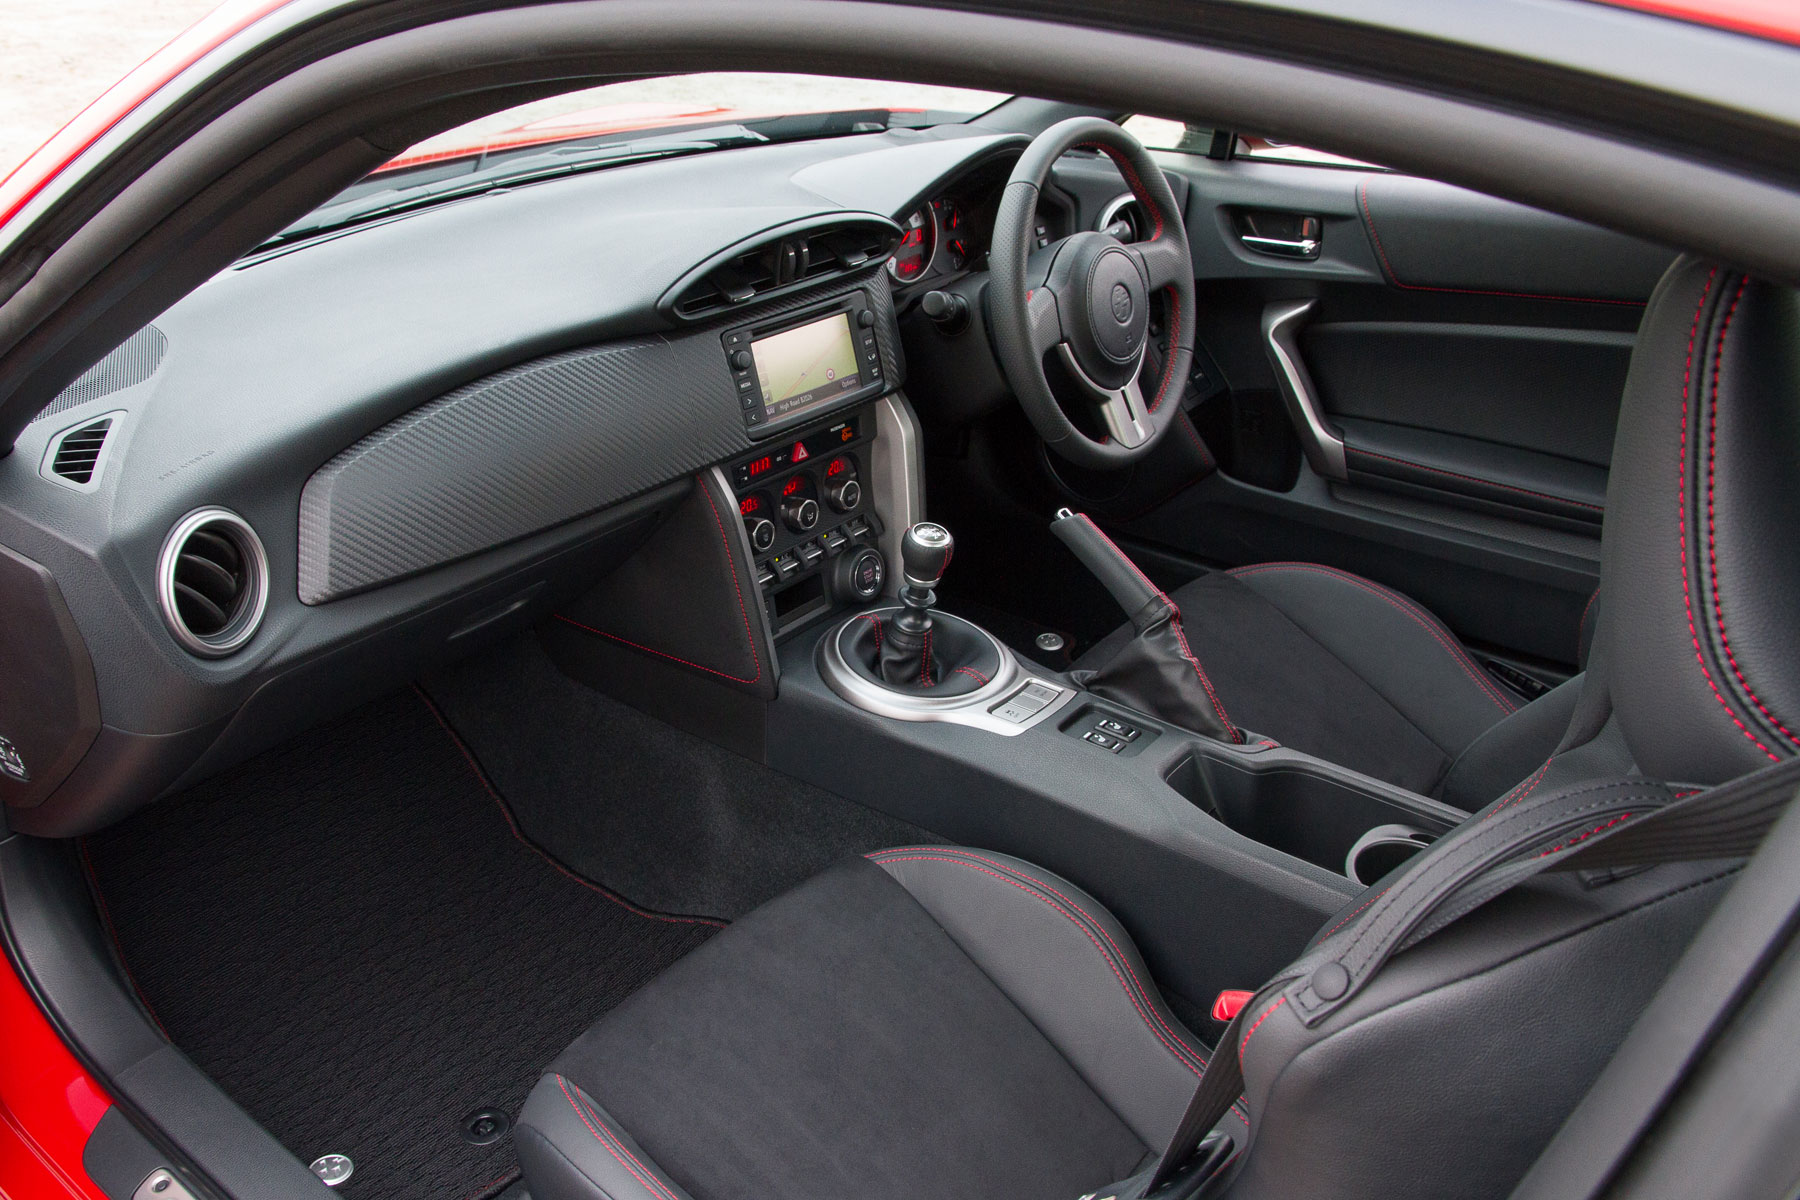 Toyota GT86: on the inside